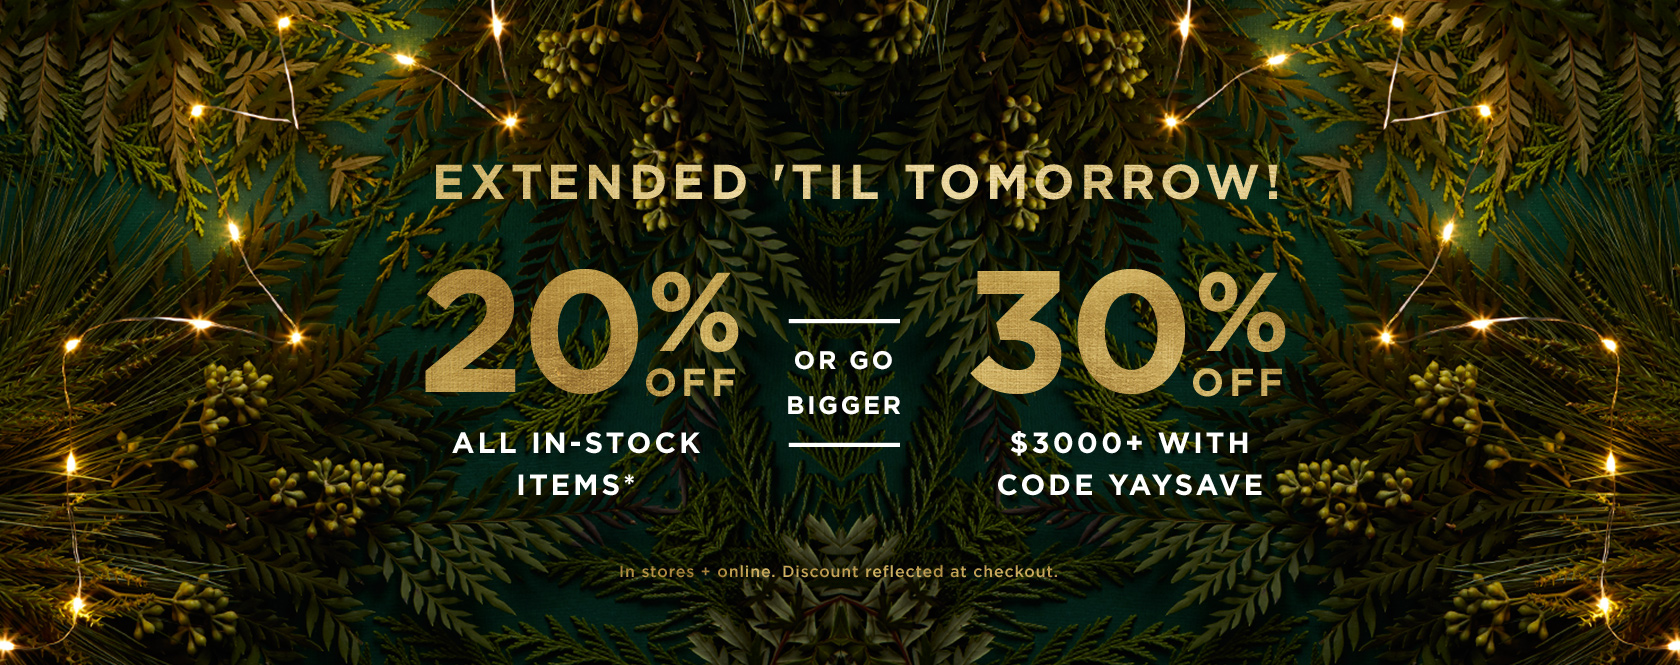 Extended 'Til Tomorrow! 20% Off In-Stock Items. Prices As Marked. Or 30% Off $3000+ With Code YAYSAVE